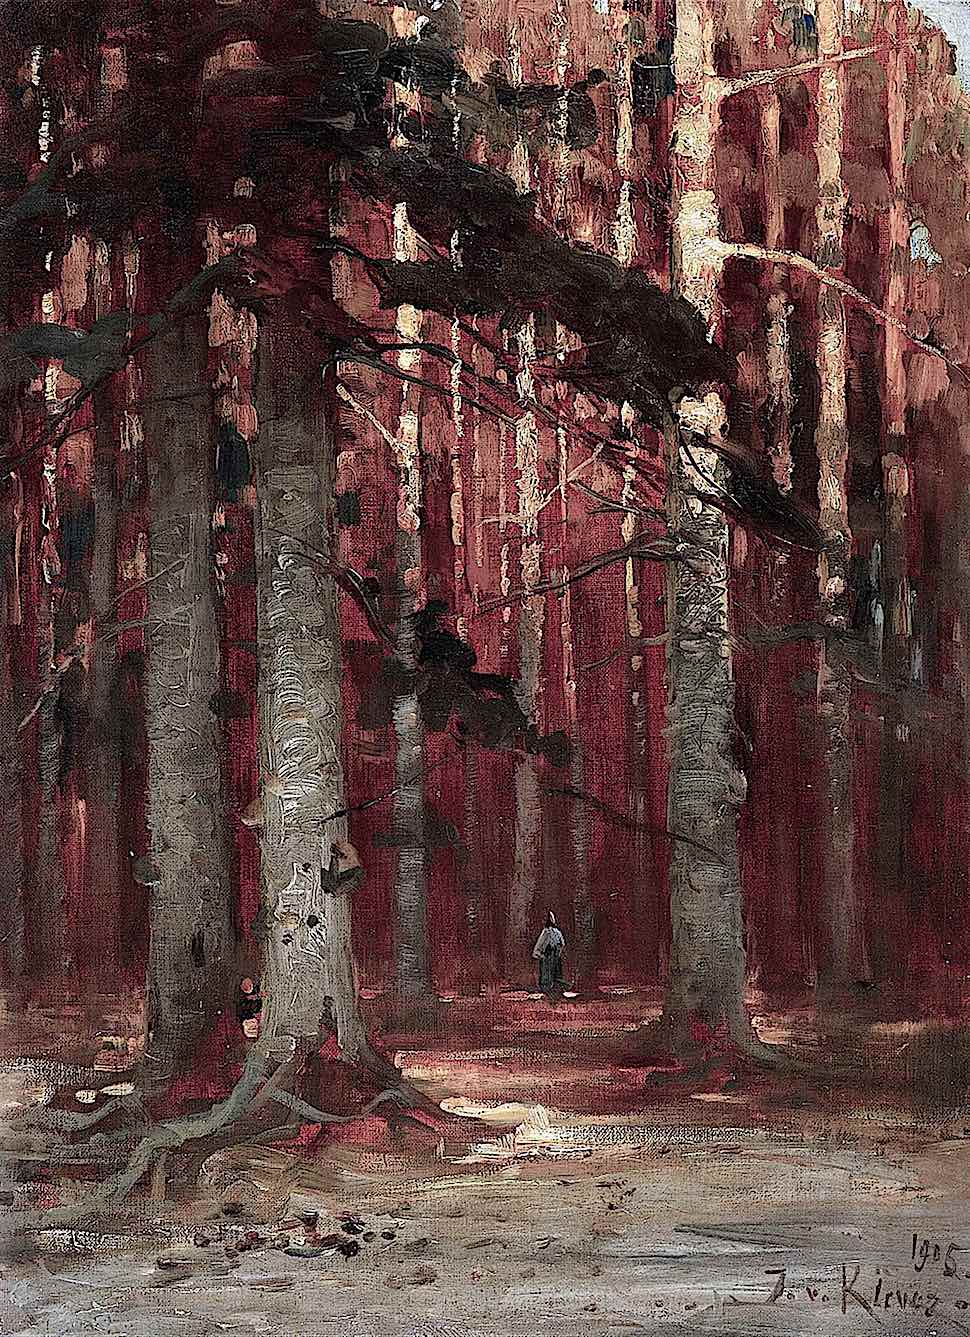 a 1905 Julius von Klever painting of a woman standing in an autumn forest